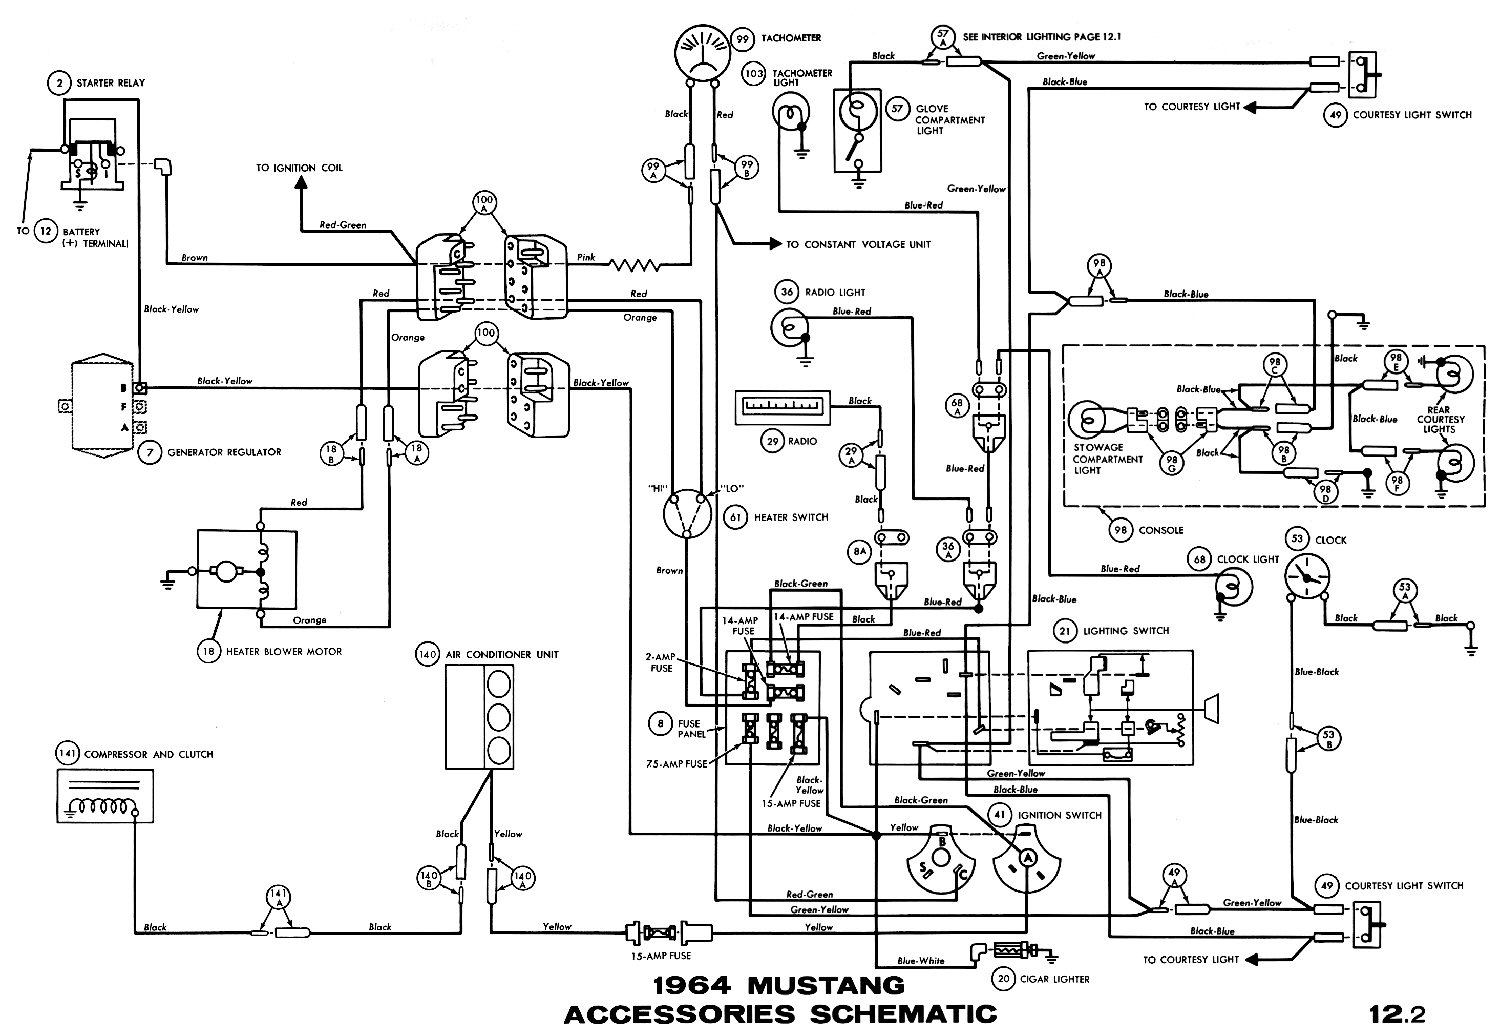 Wondrous 1964 Mustang Wiring Diagrams Average Joe Restoration Wiring Digital Resources Remcakbiperorg